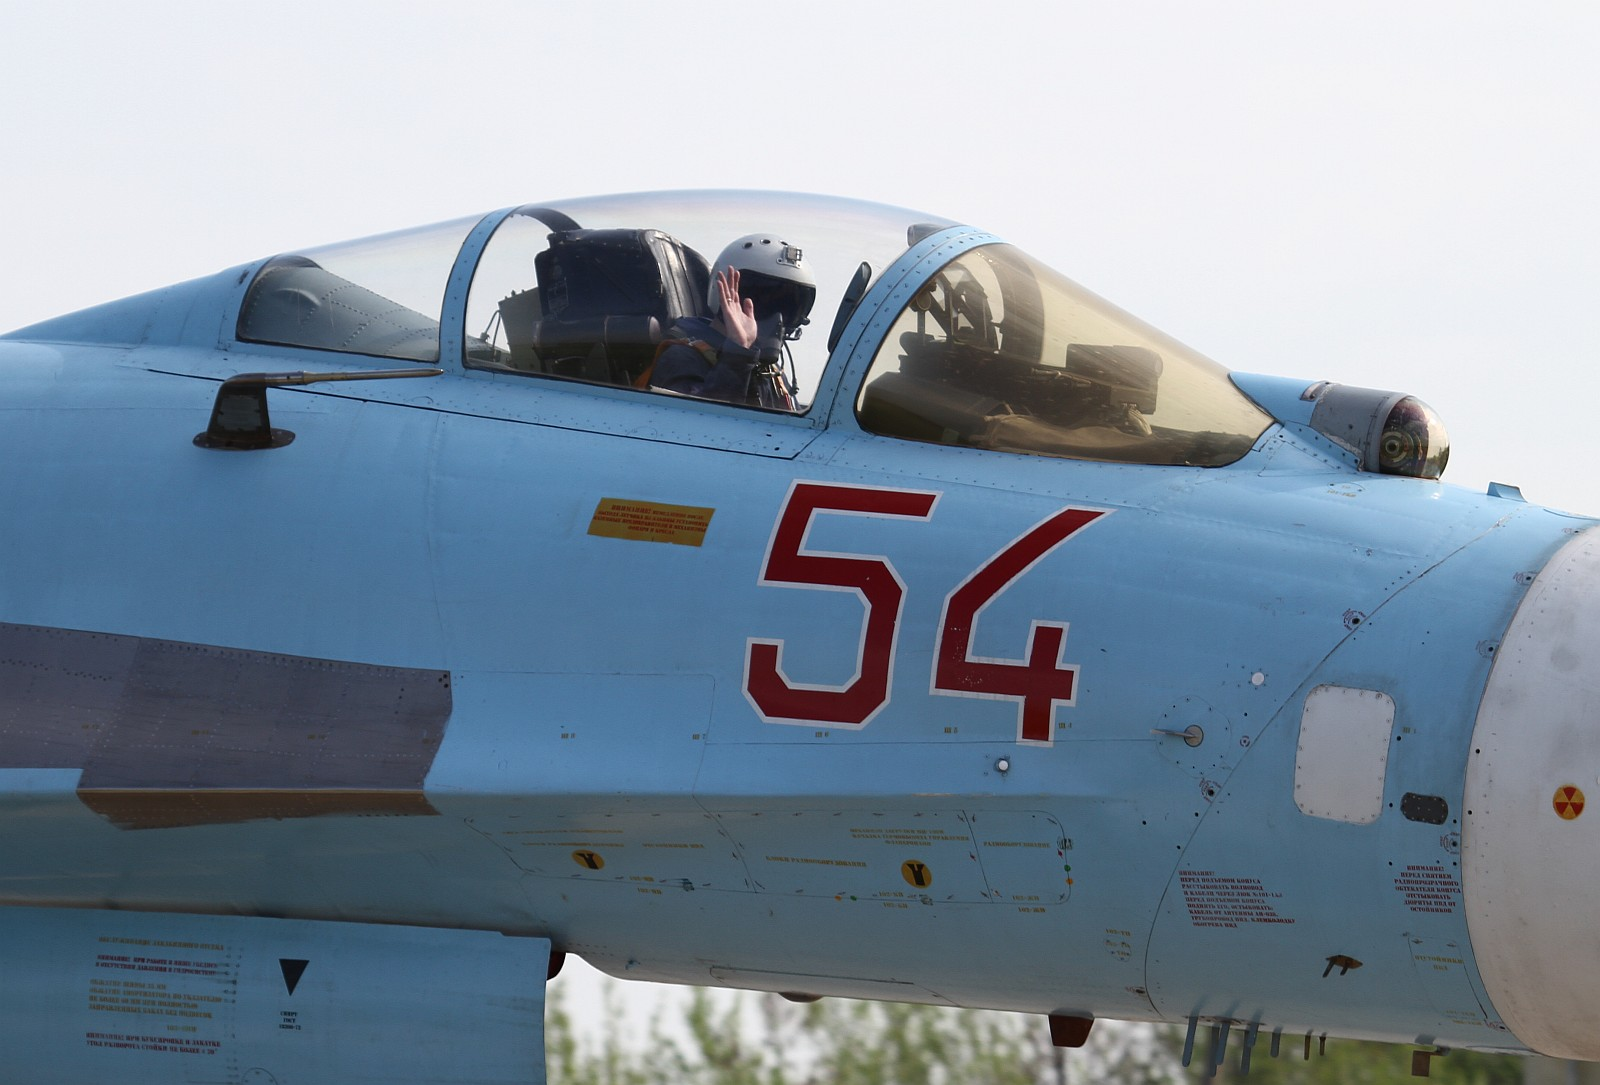 http://forums.airforce.ru/attachment.php?attachmentid=24288&d=1273492710